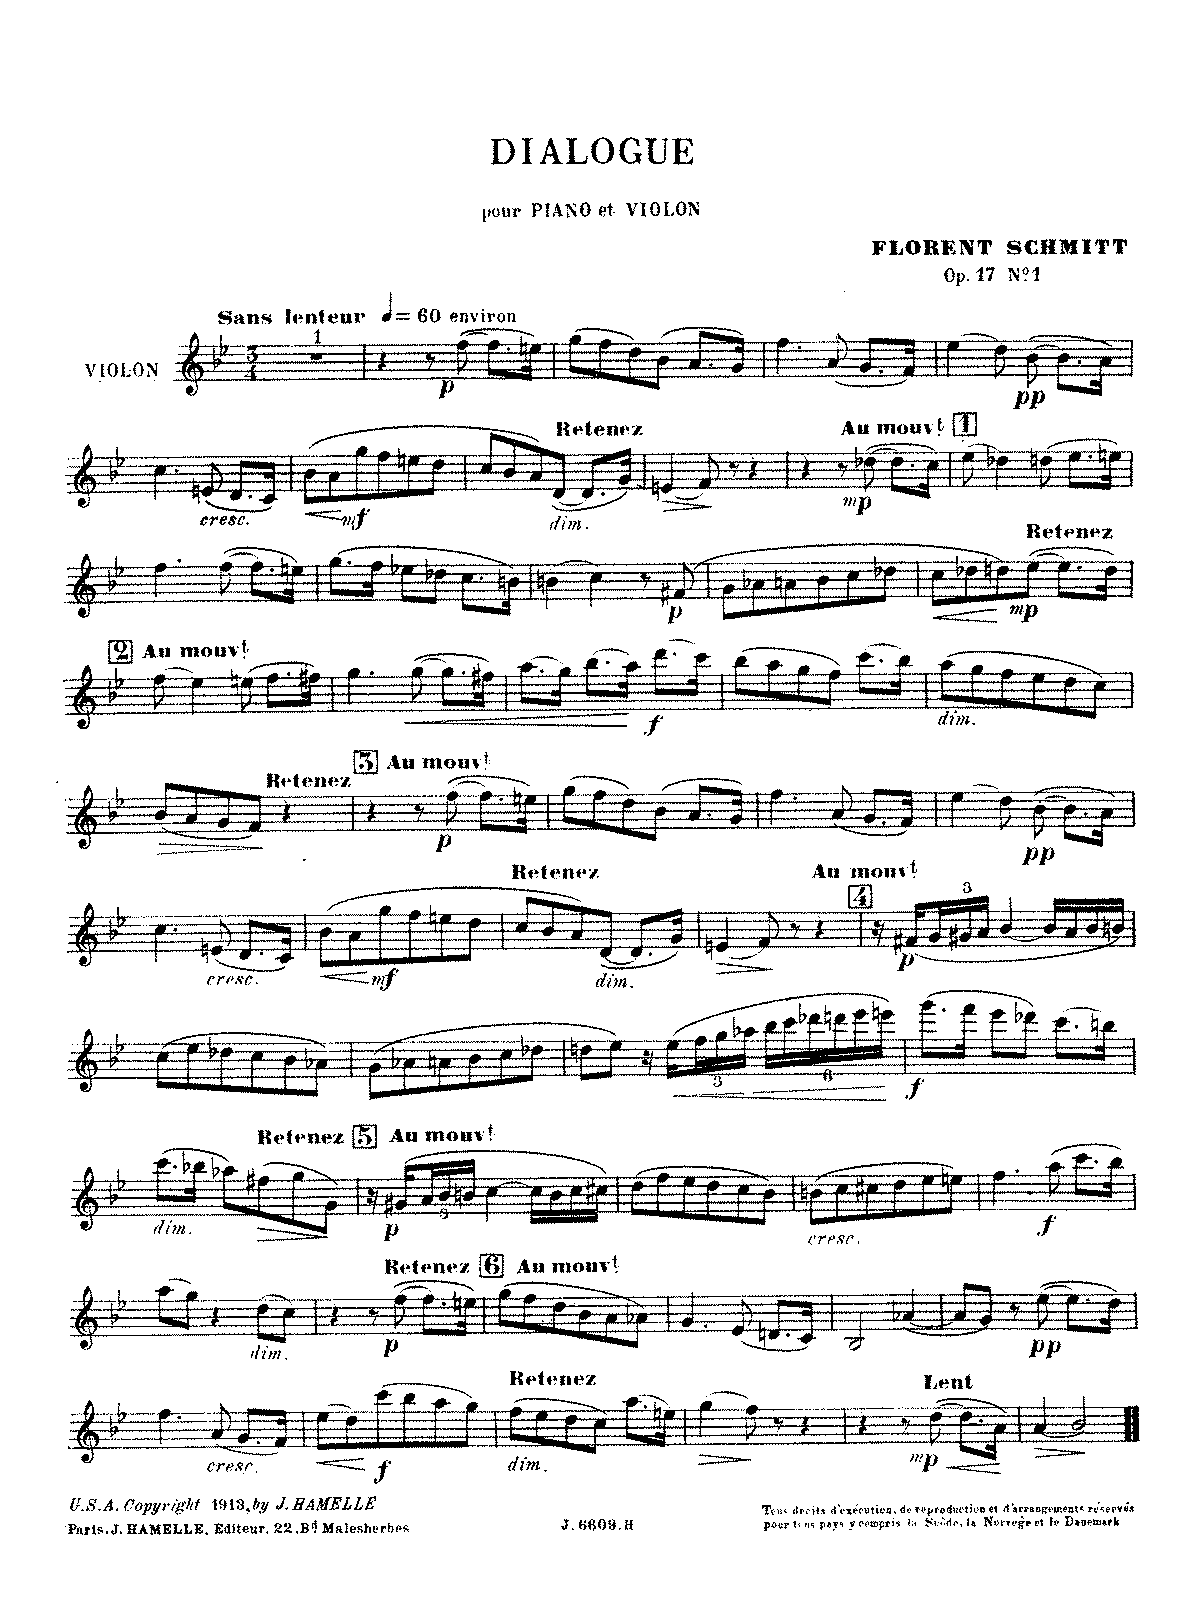 PMLP55465-Schmitt - 5 Pièces, Op. 19, No. 3 - Dialogue (violin or cello and piano).pdf